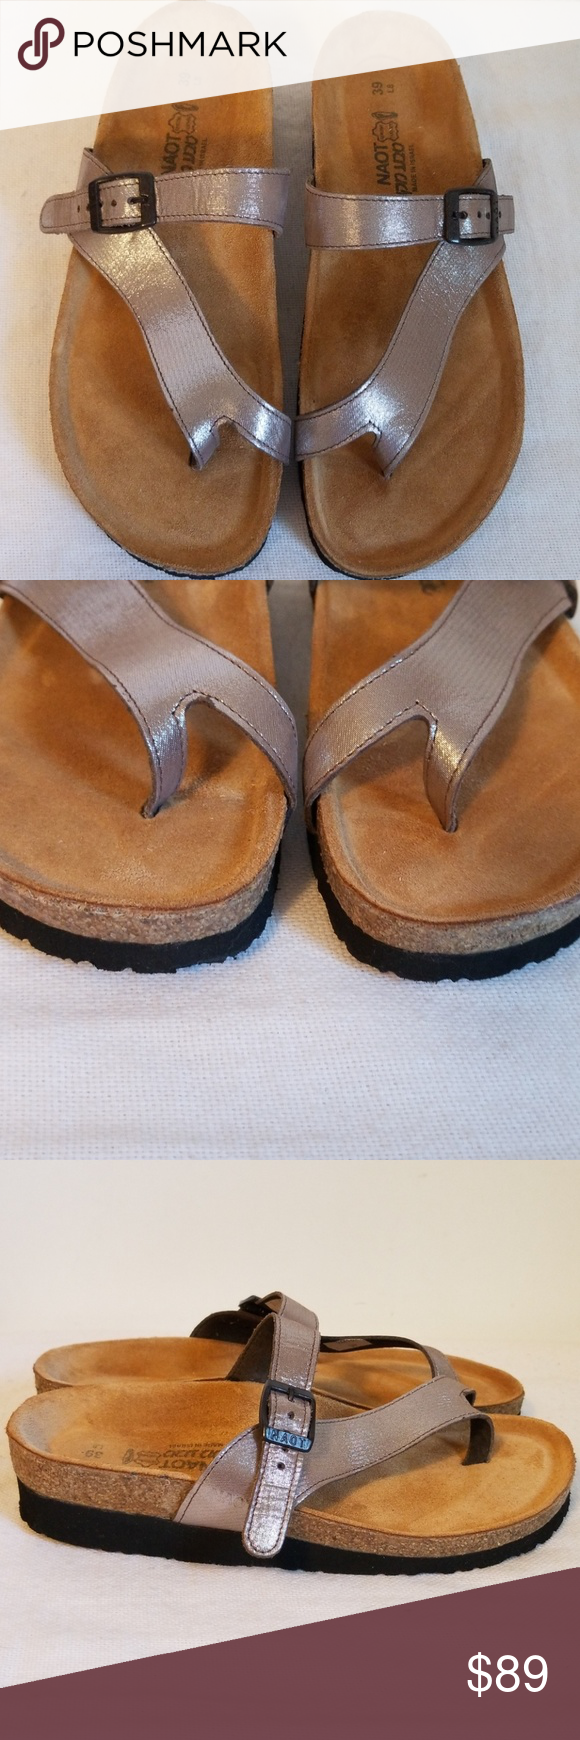 8a272da0a2ec Naot Tahoe Silver Leather Sandals 8 Worn once and cleaned. Excellent  condition. Naot Shoes